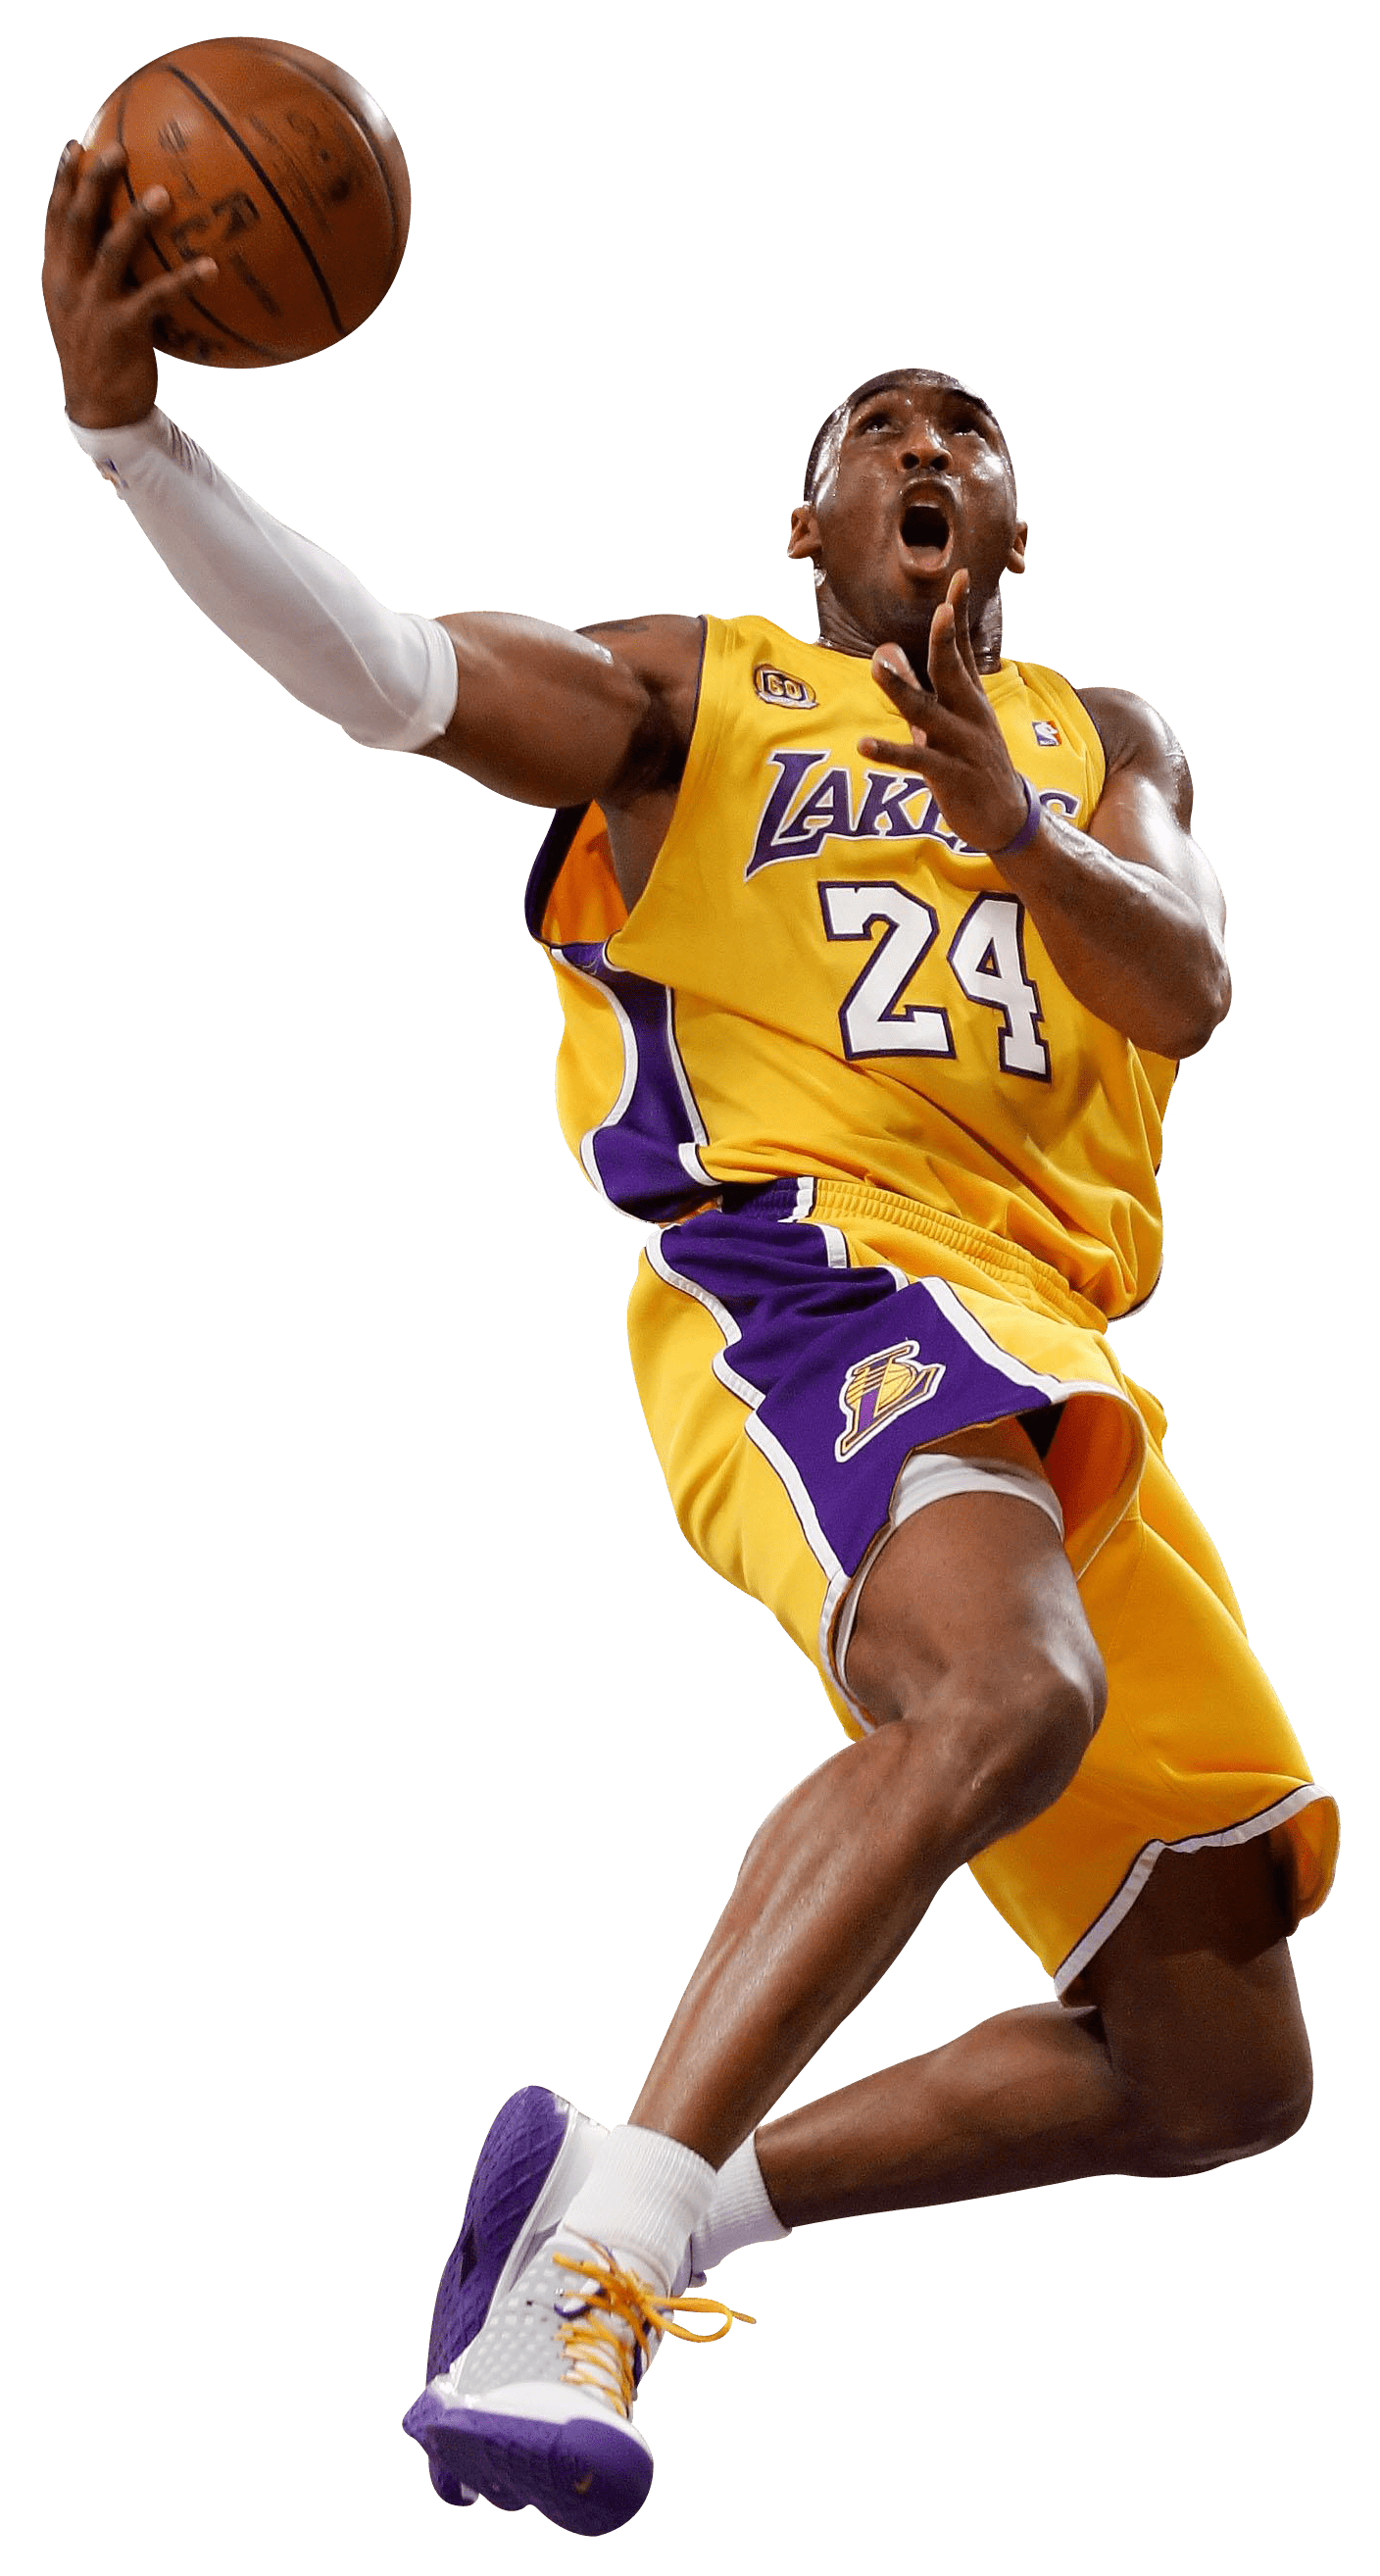 Download - Basketball Dunk PNG